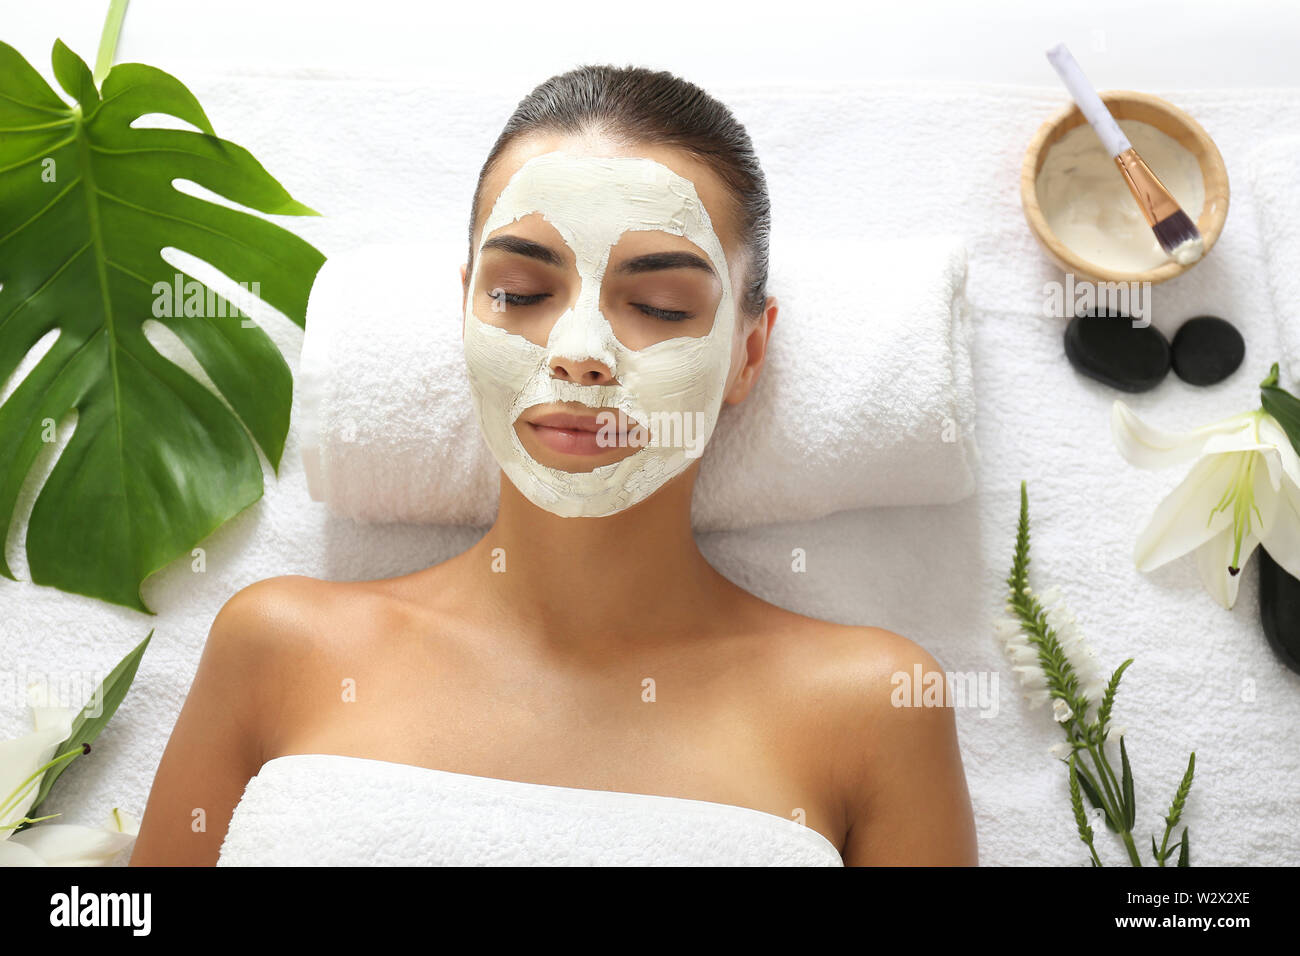 Beautiful Young Woman With Facial Mask Relaxing In Spa Salon Stock Photo Alamy